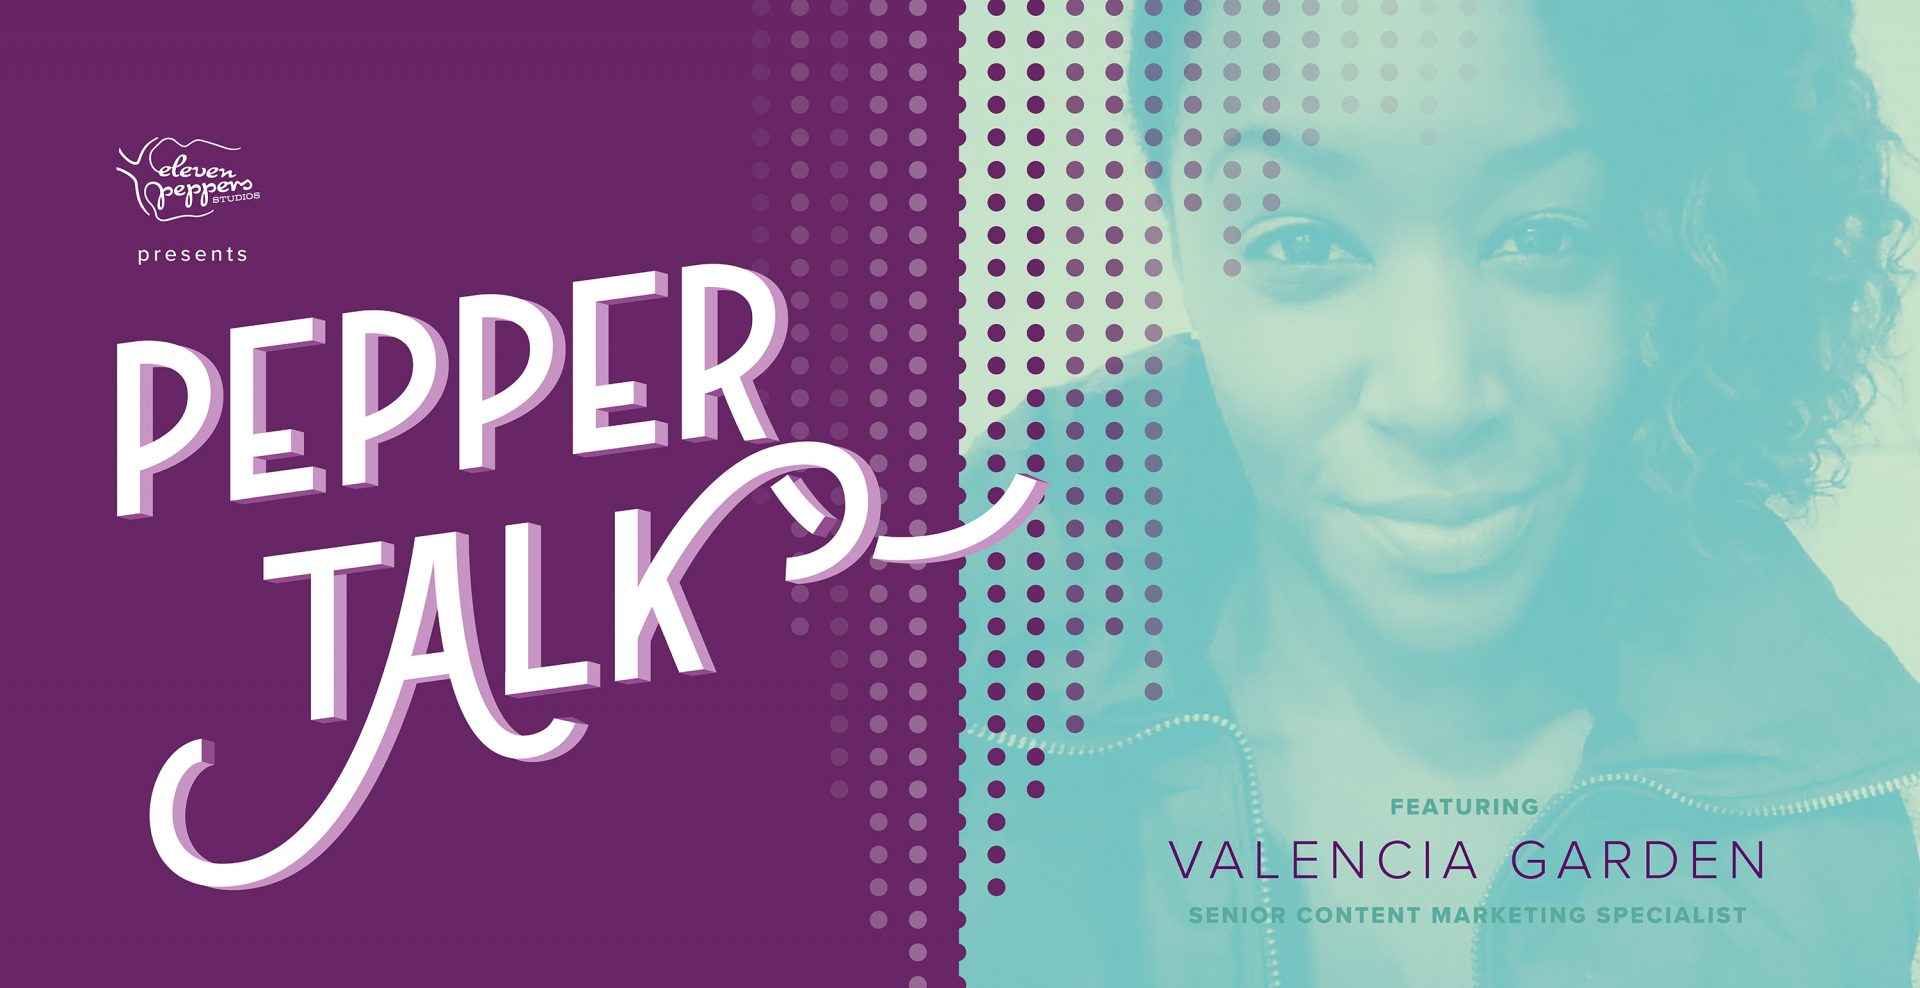 Pepper Talk with Valencia Garden